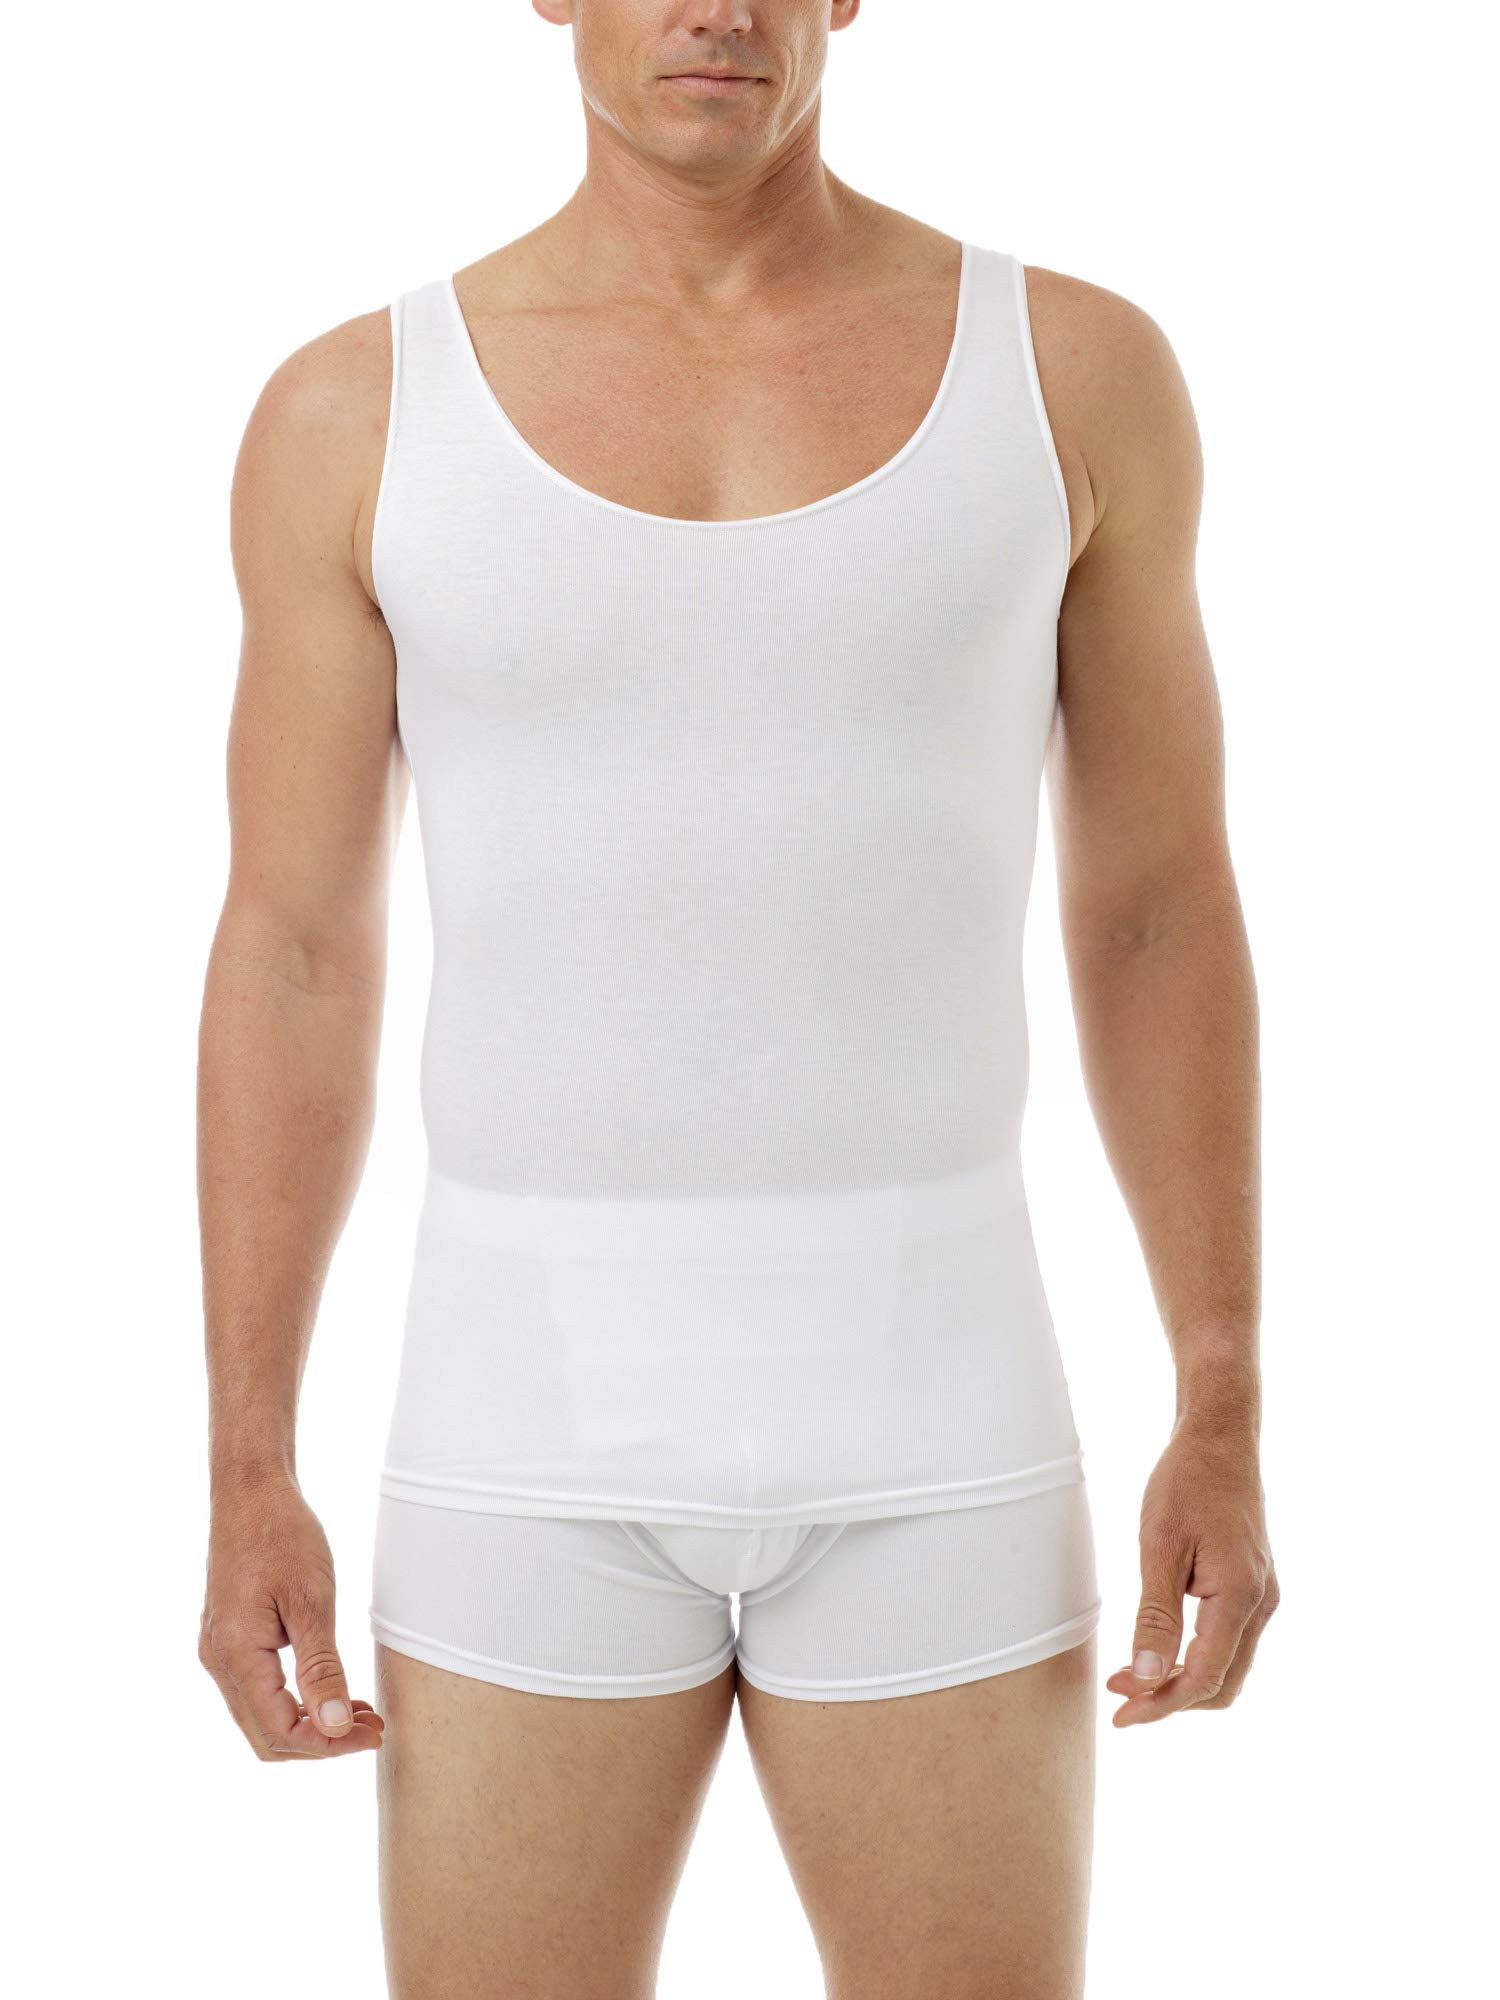 Underworks Mens Cotton Spandex Compression Tank 3-Pack, XLarge, White by Underworks (Image #1)